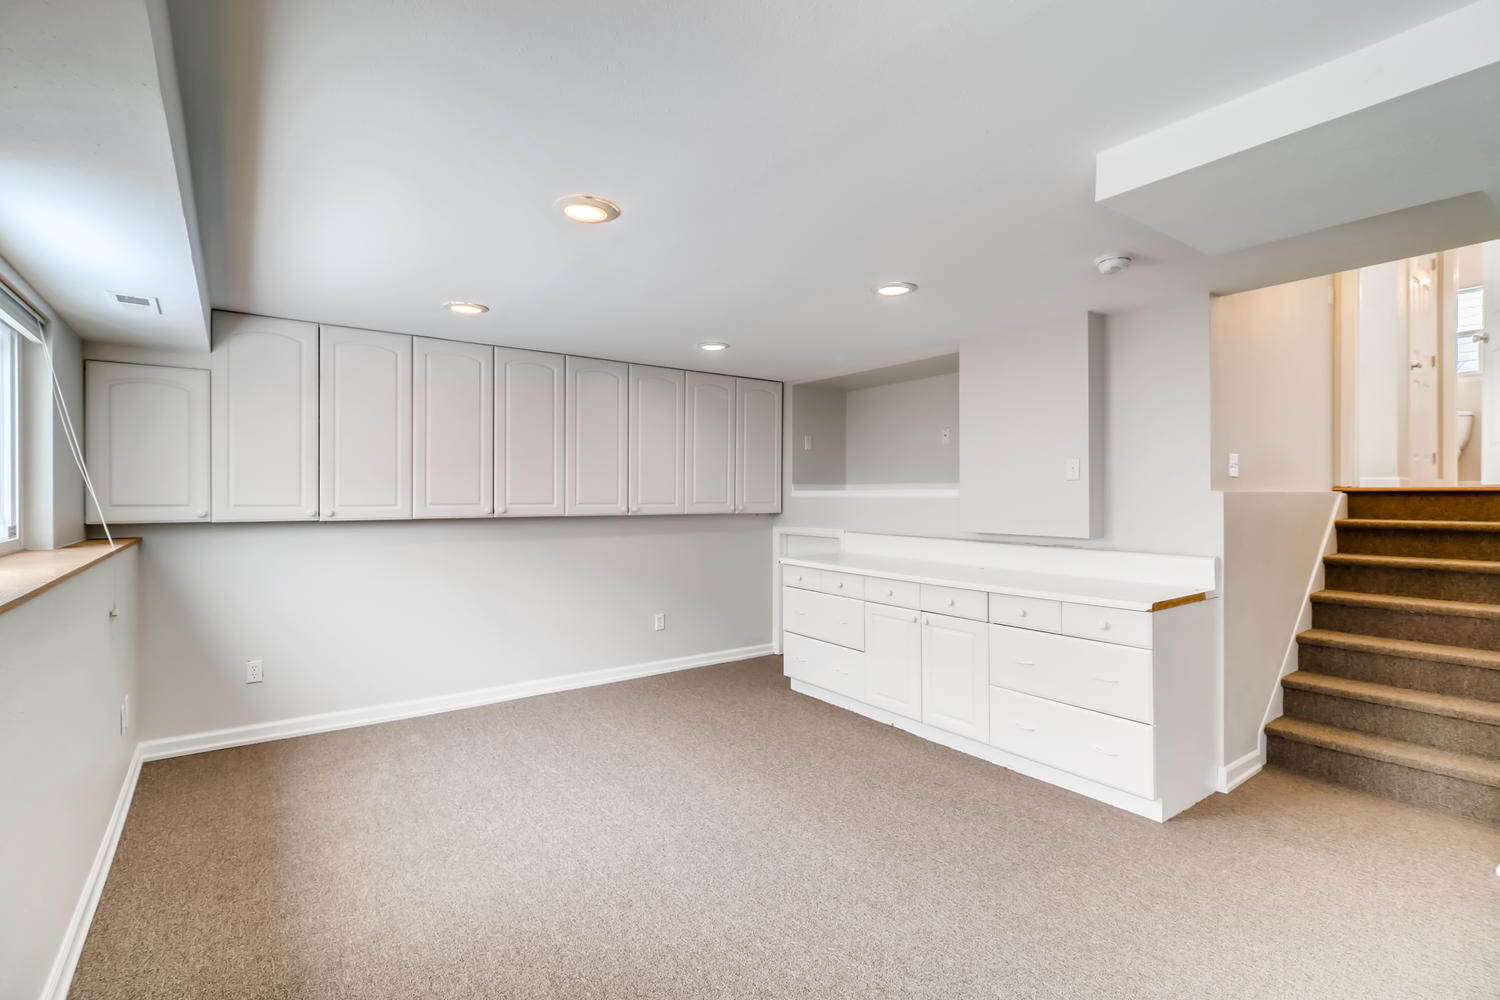 REAL ESTATE LISTING: 1902 Fountain Court Basement Flex Space